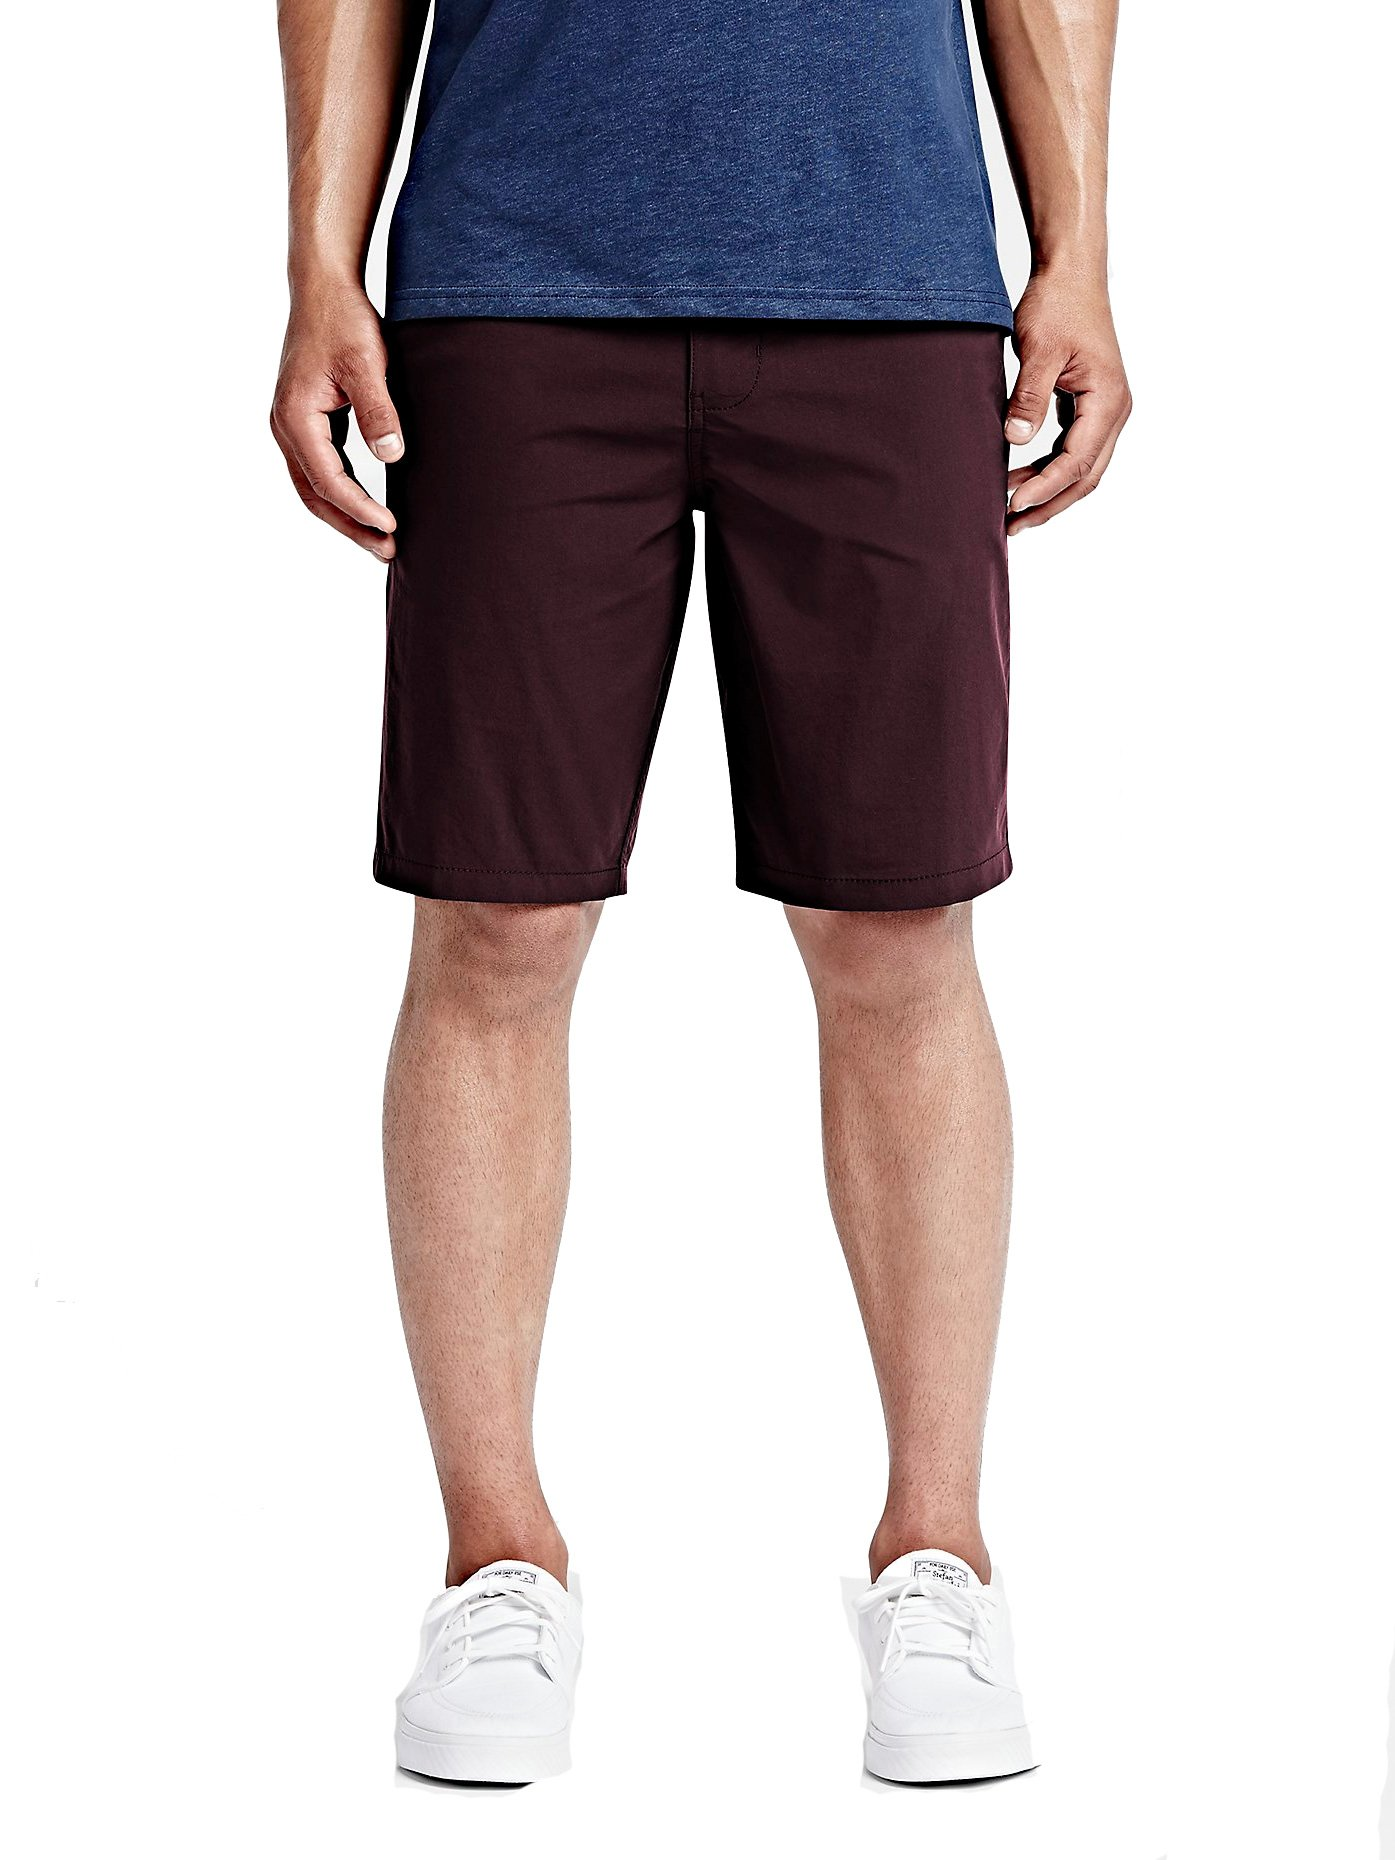 Hurley Men's Dri-Fit Chino Walkshorts, Mahogany, 36